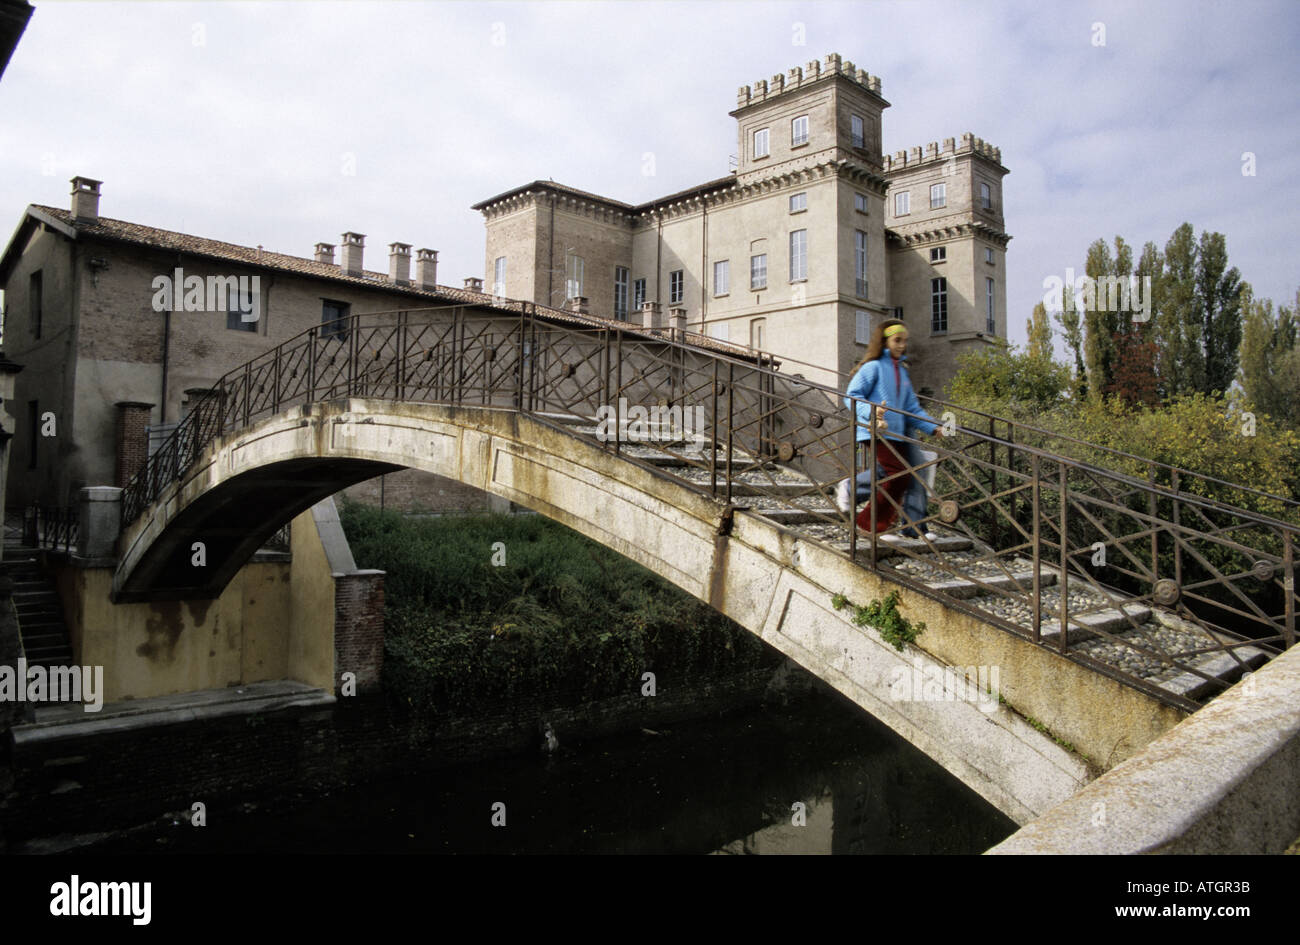 The oldest bridge on the Naviglio in the Milan province - Stock Image